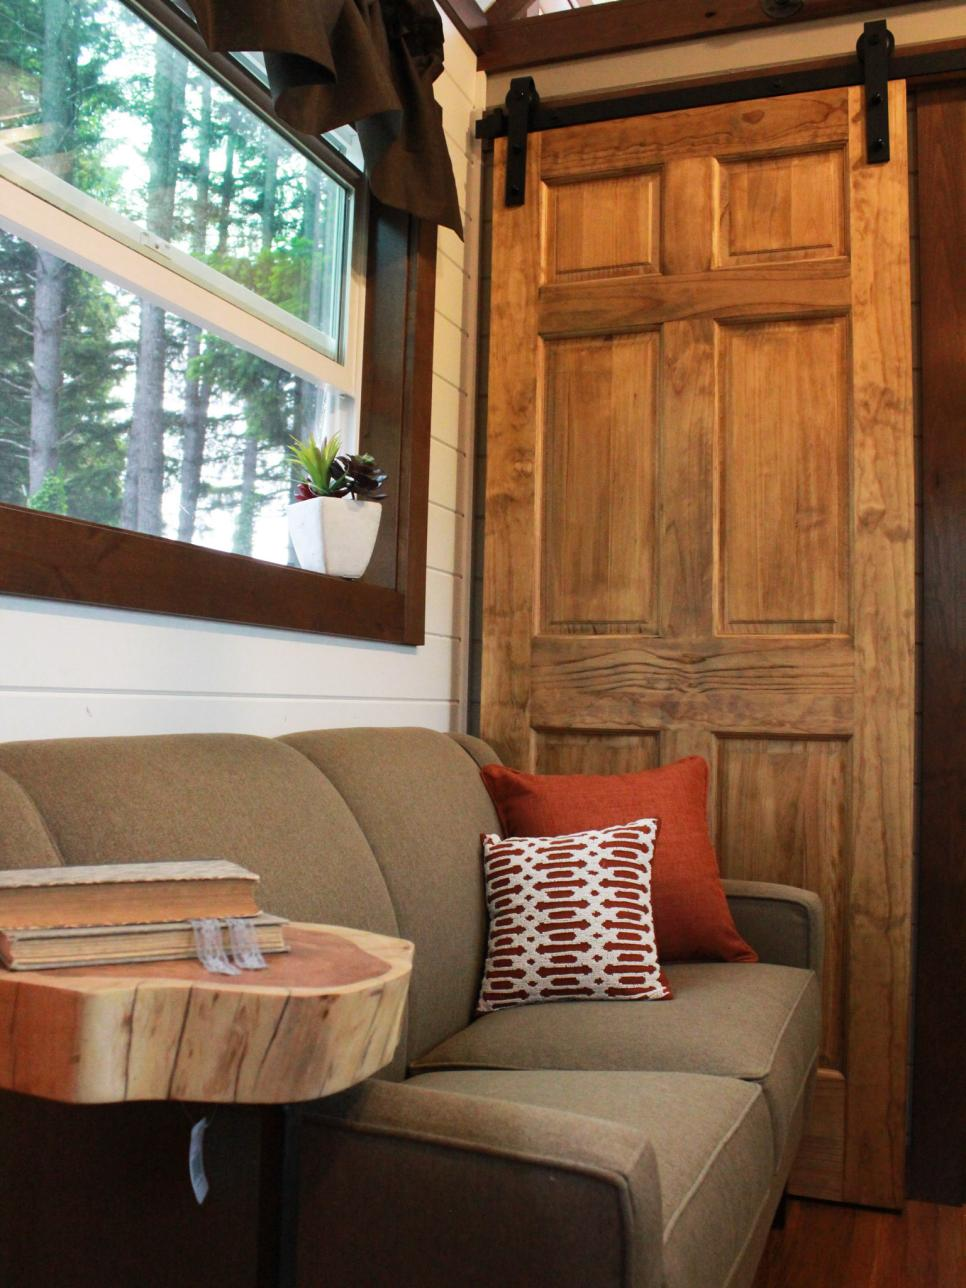 The sapphire house from tiny heirloom tiny house town - Craftsman Tiny House Living Room By Tiny Heirloom